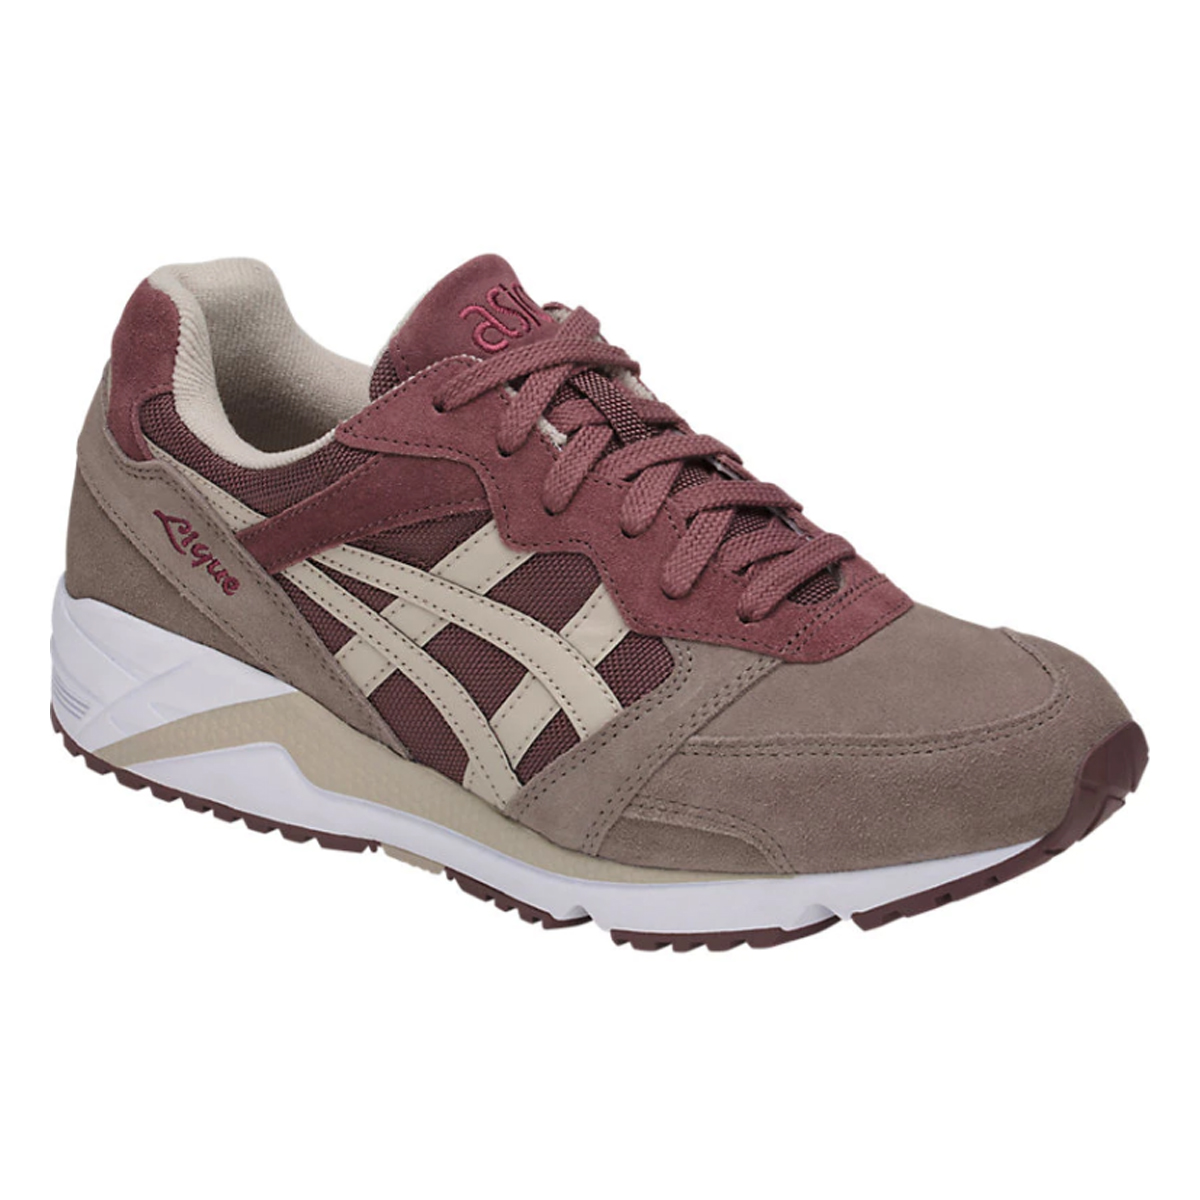 size 40 309c8 bbff9 Details about Asics Gel-Lique Men's Rose Taupe Feather Grey Sneaker Shoes  H838L-2612